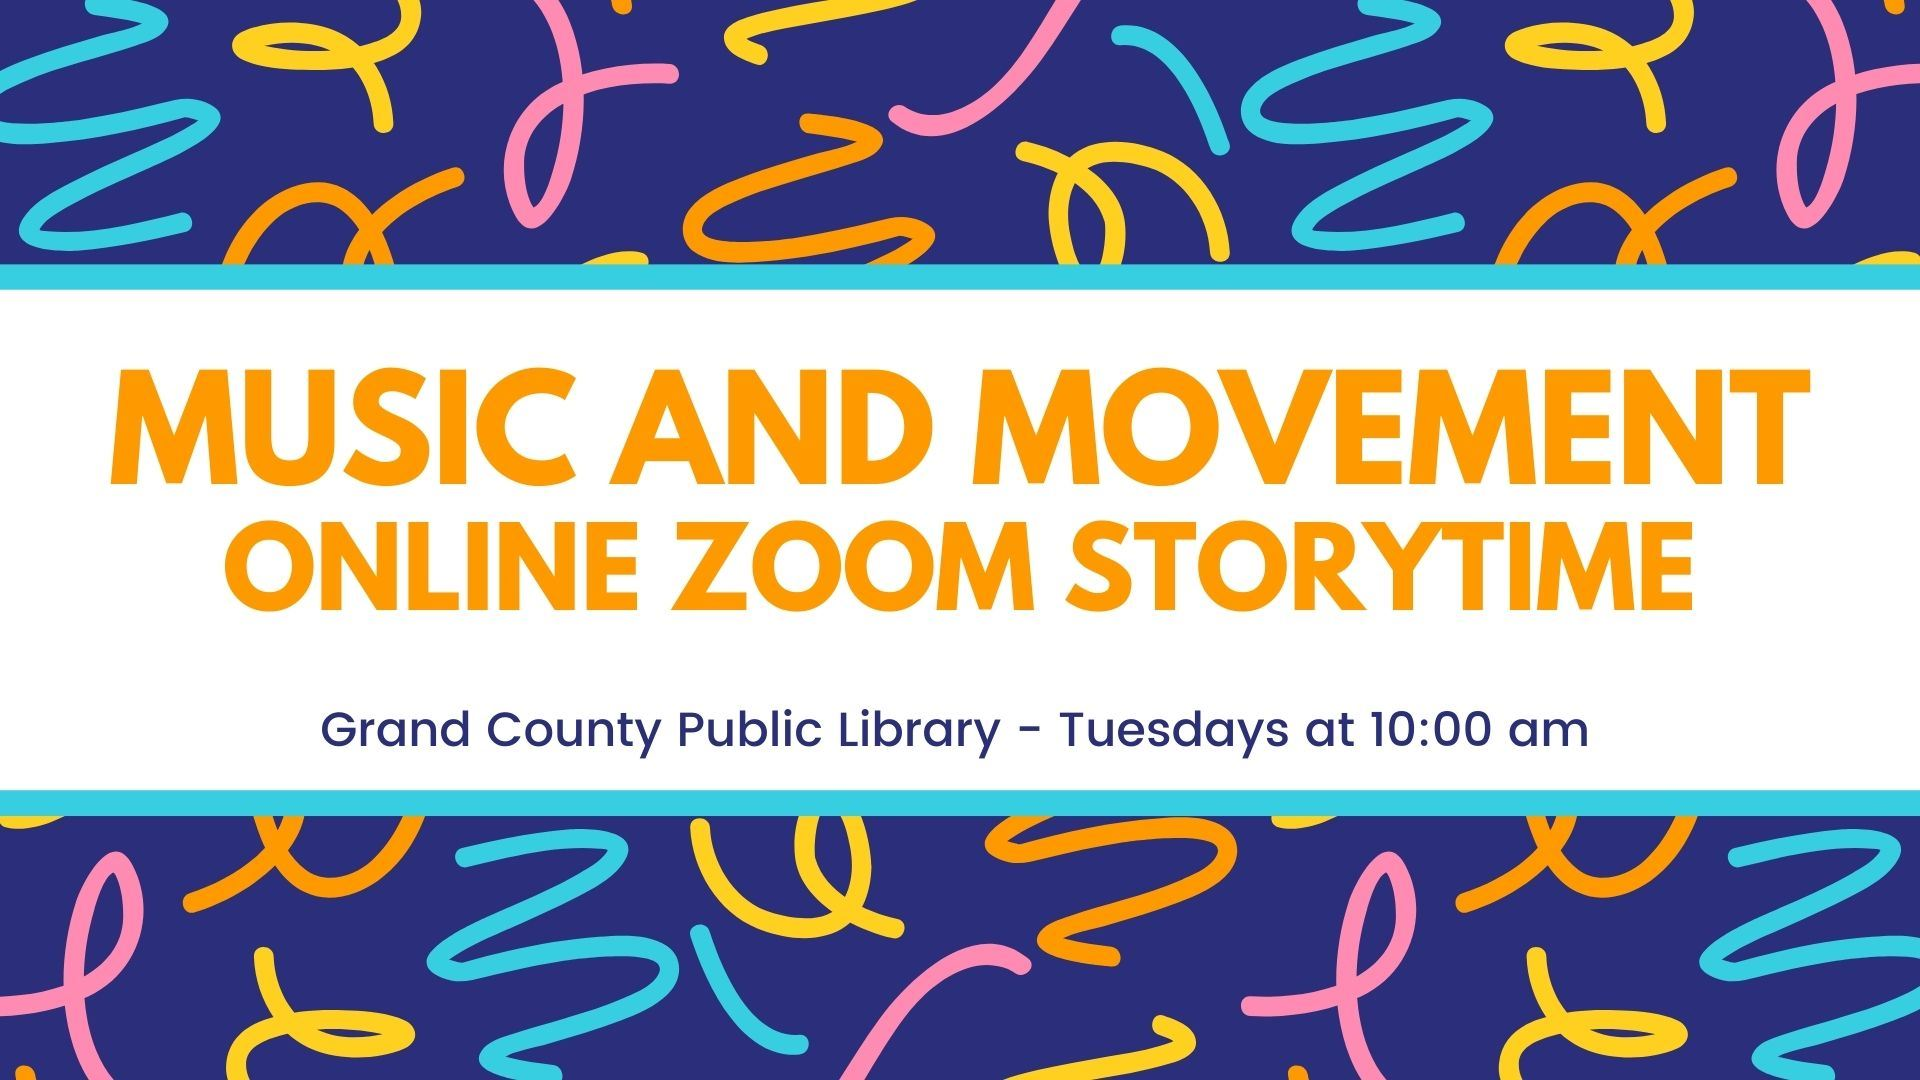 Music and Movement Storytime Facebook Event Cover